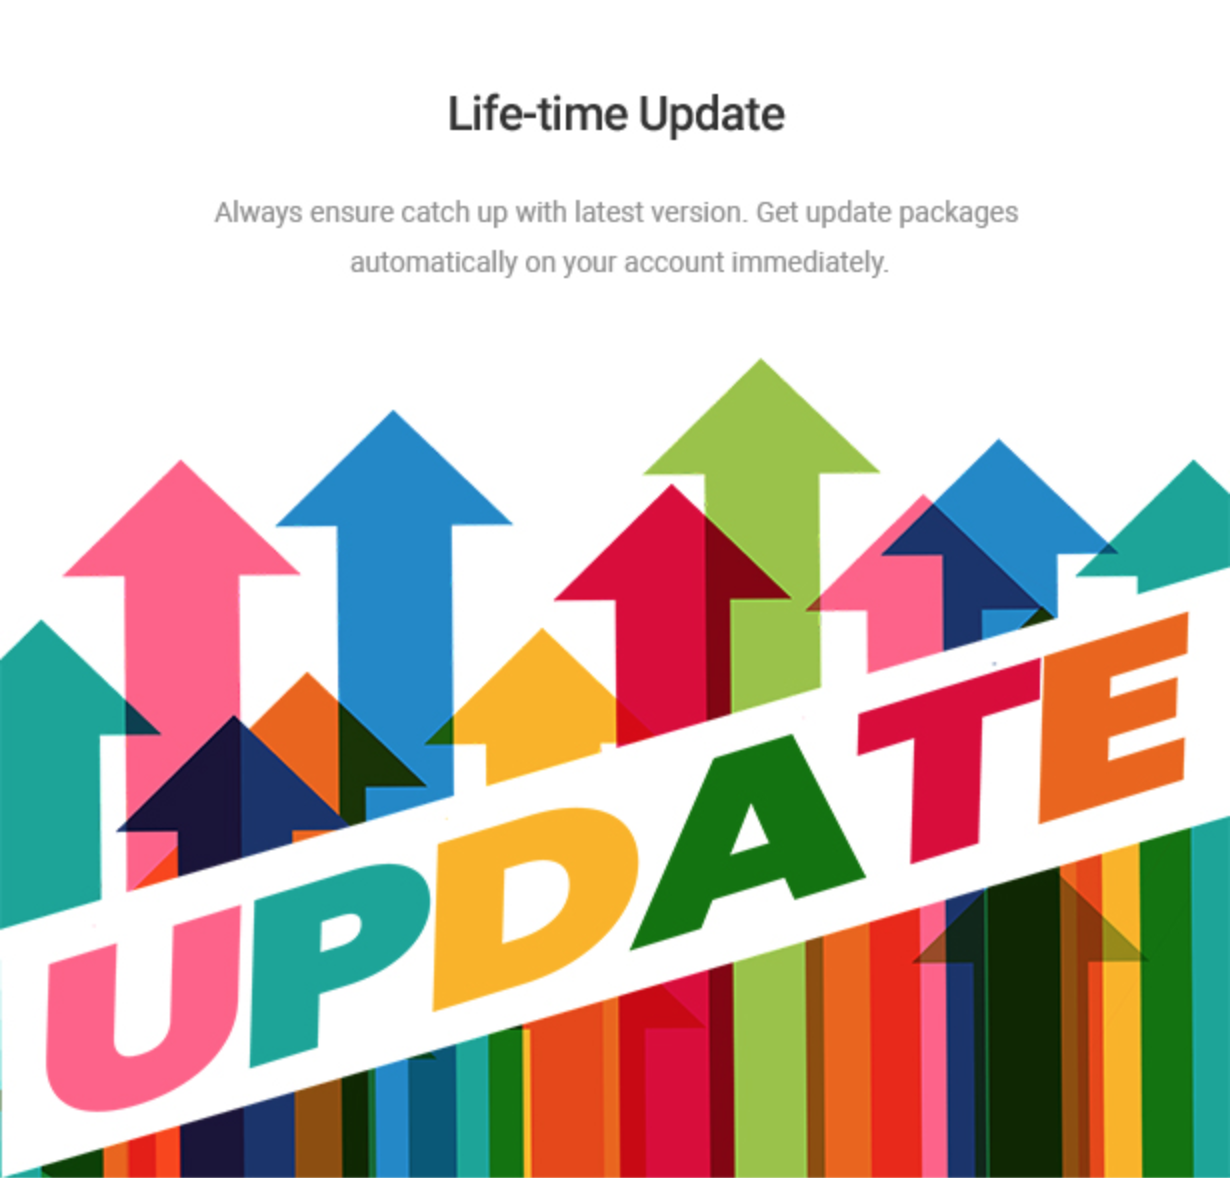 Mastor - Law, Firm & Legal Attorney WordPress Theme Life Time Updated